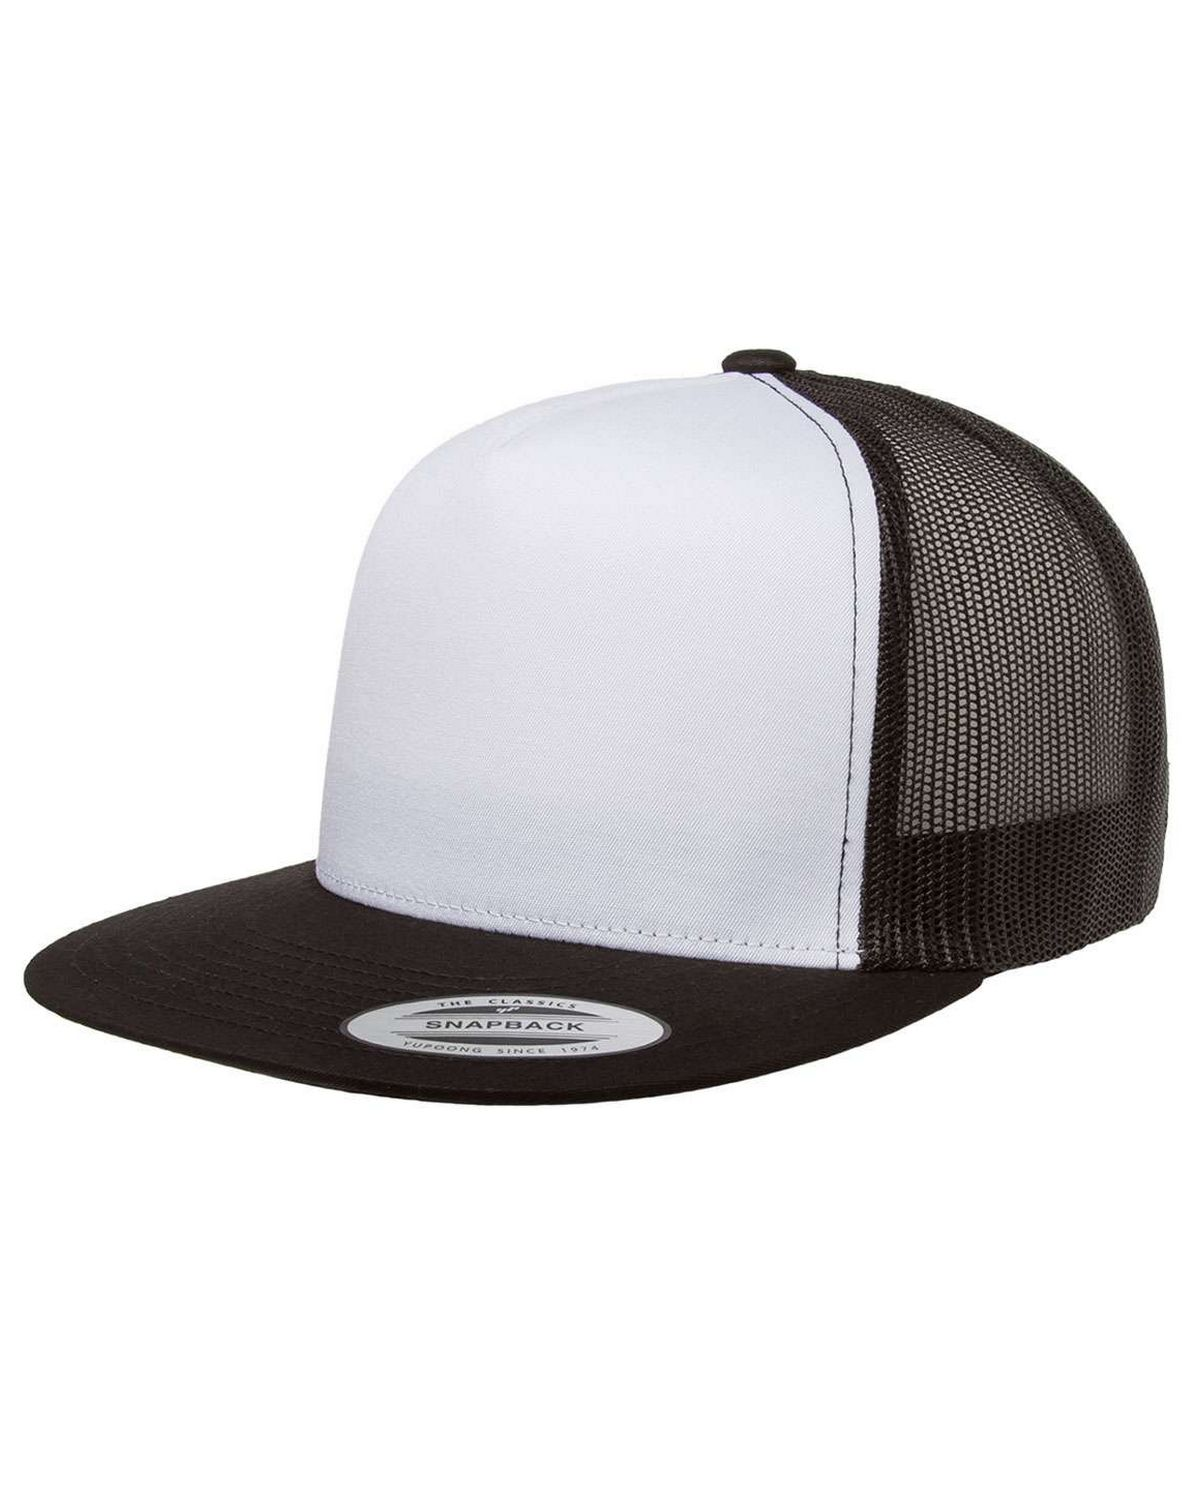 Yupoong 6006W Adult Classic Trucker White Front Panel Cap